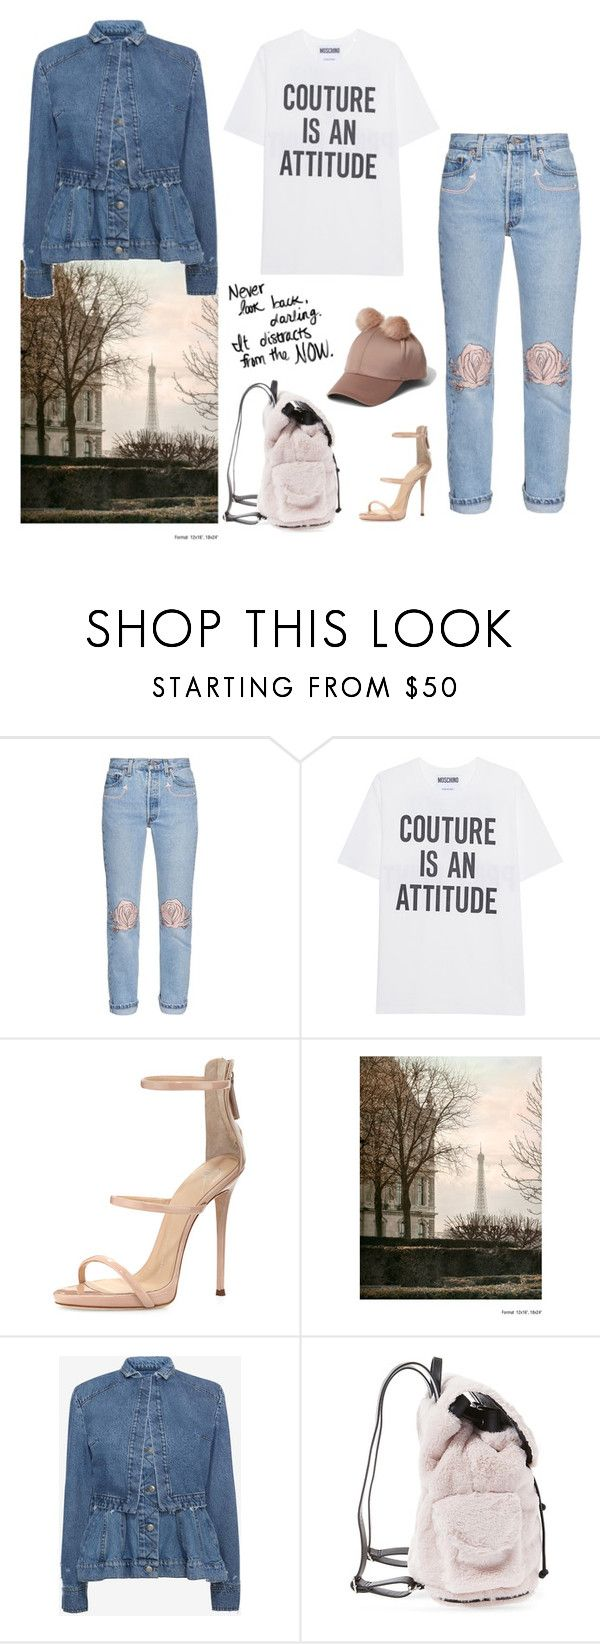 """""""Untitled #502"""" by fashionlover-1995 ❤ liked on Polyvore featuring Bliss and Mischief, Moschino, Giuseppe Zanotti, WALL, Alexander McQueen, Steve Madden, River Island and modern"""